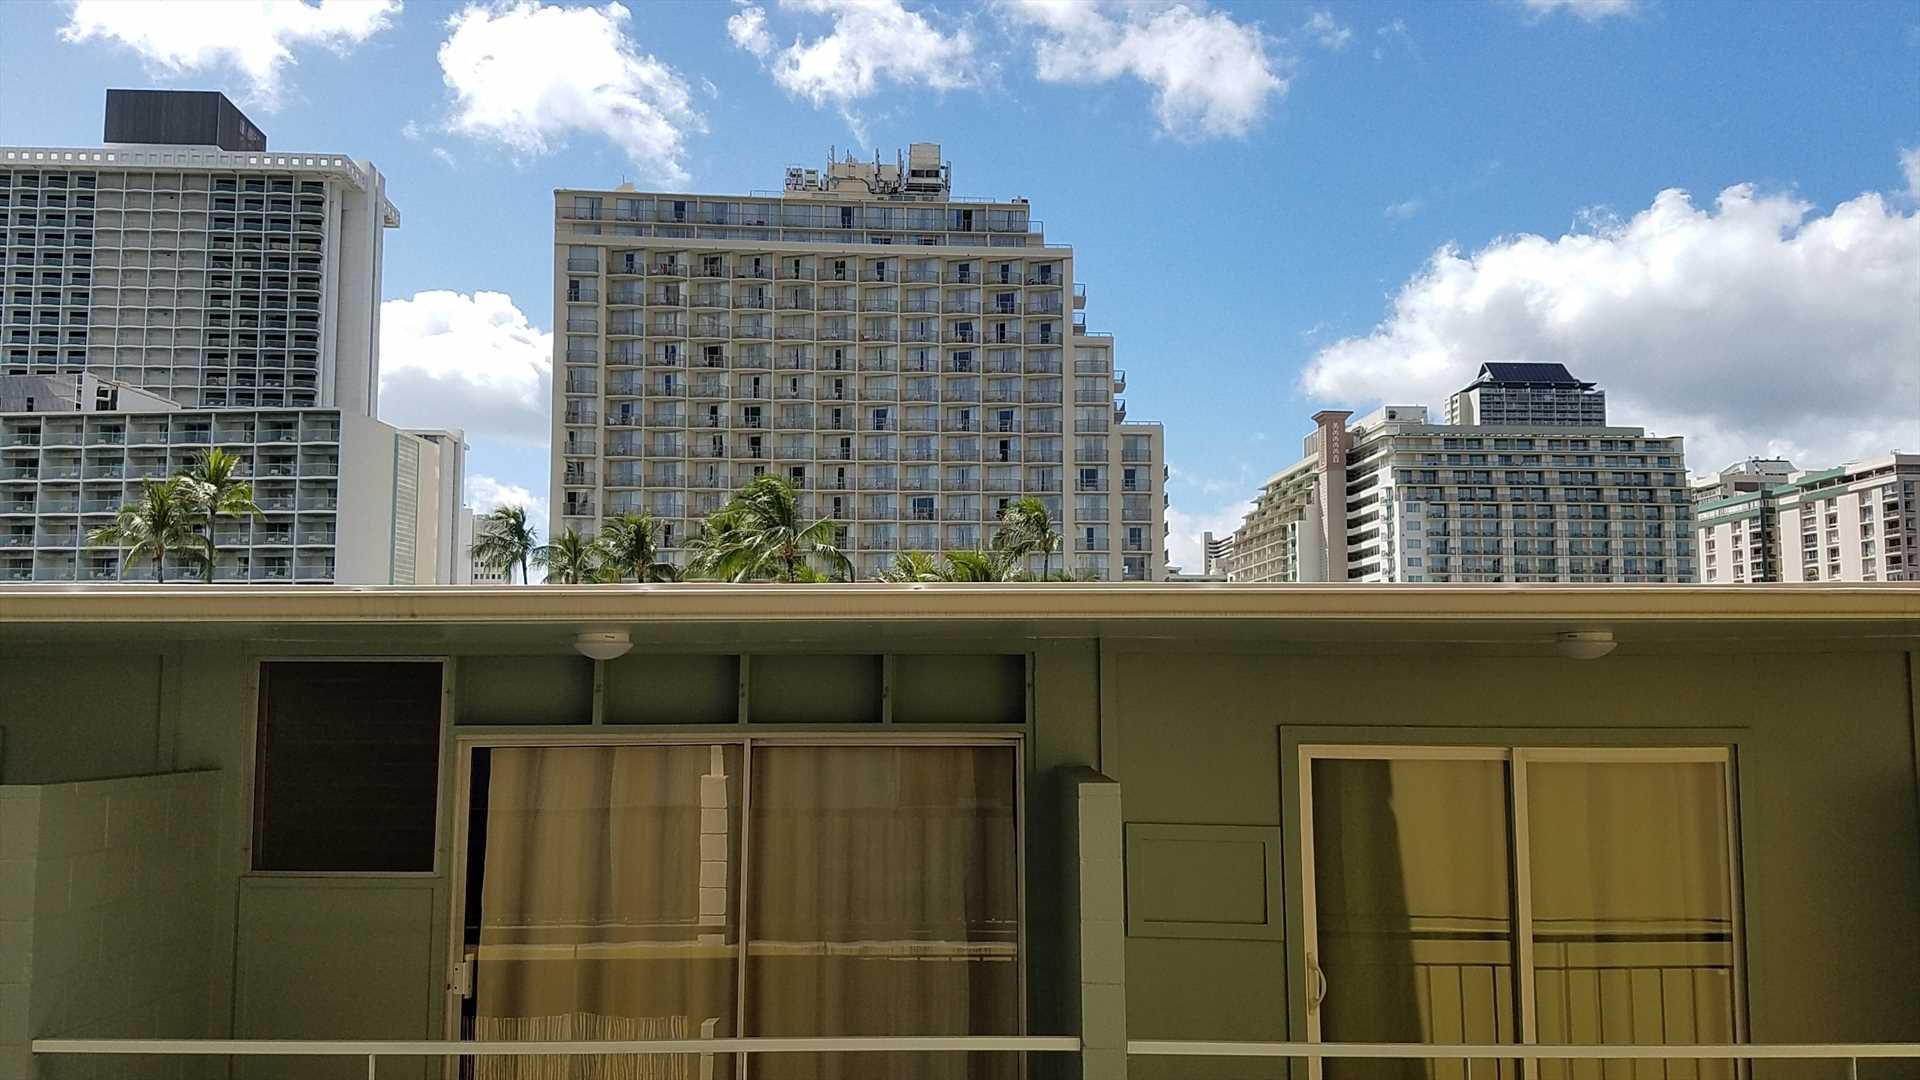 There is a skyline view from the lanai over the top of the newly renovated hotel next door.  For your convenience, we've installed a privacy film on the lower portion of the sliding glass door, so you do not need to keep the curtains closed.  (Hopefully,